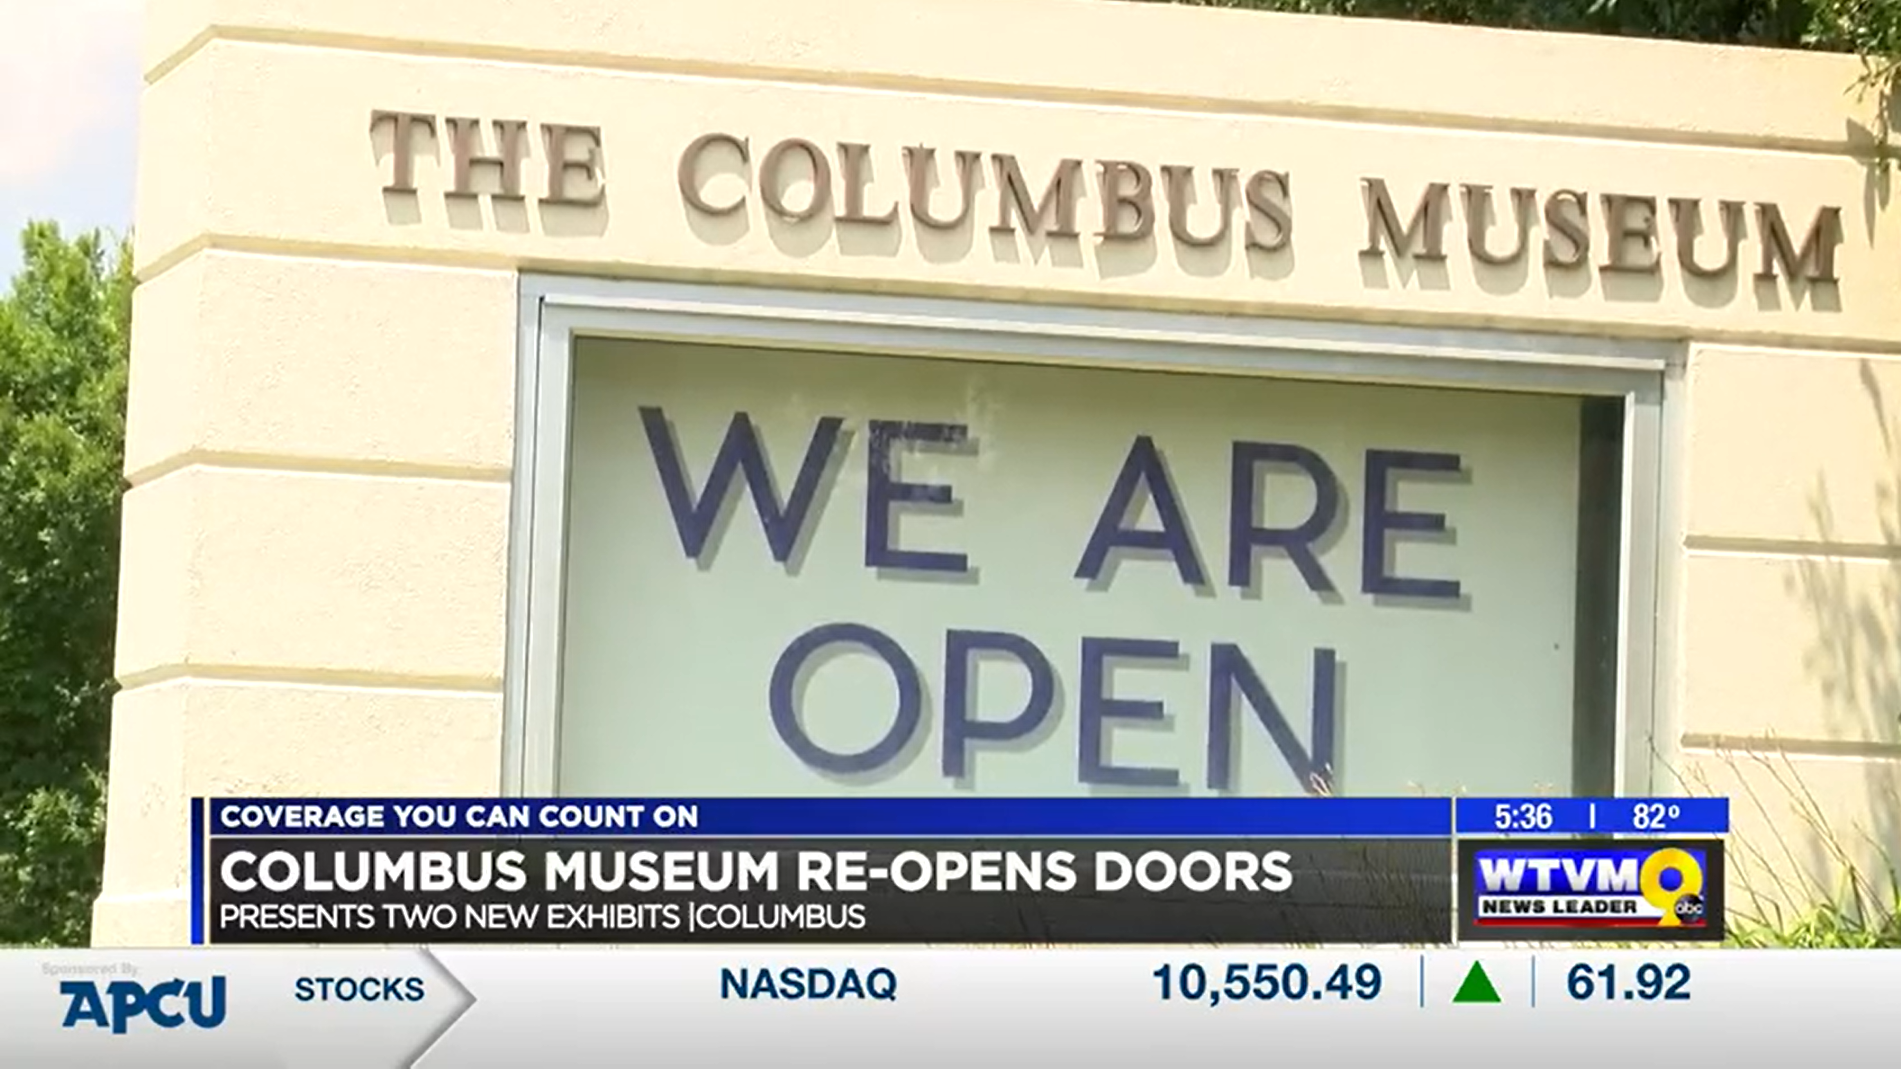 Columbus Museum Reopens with Two New Exhibits